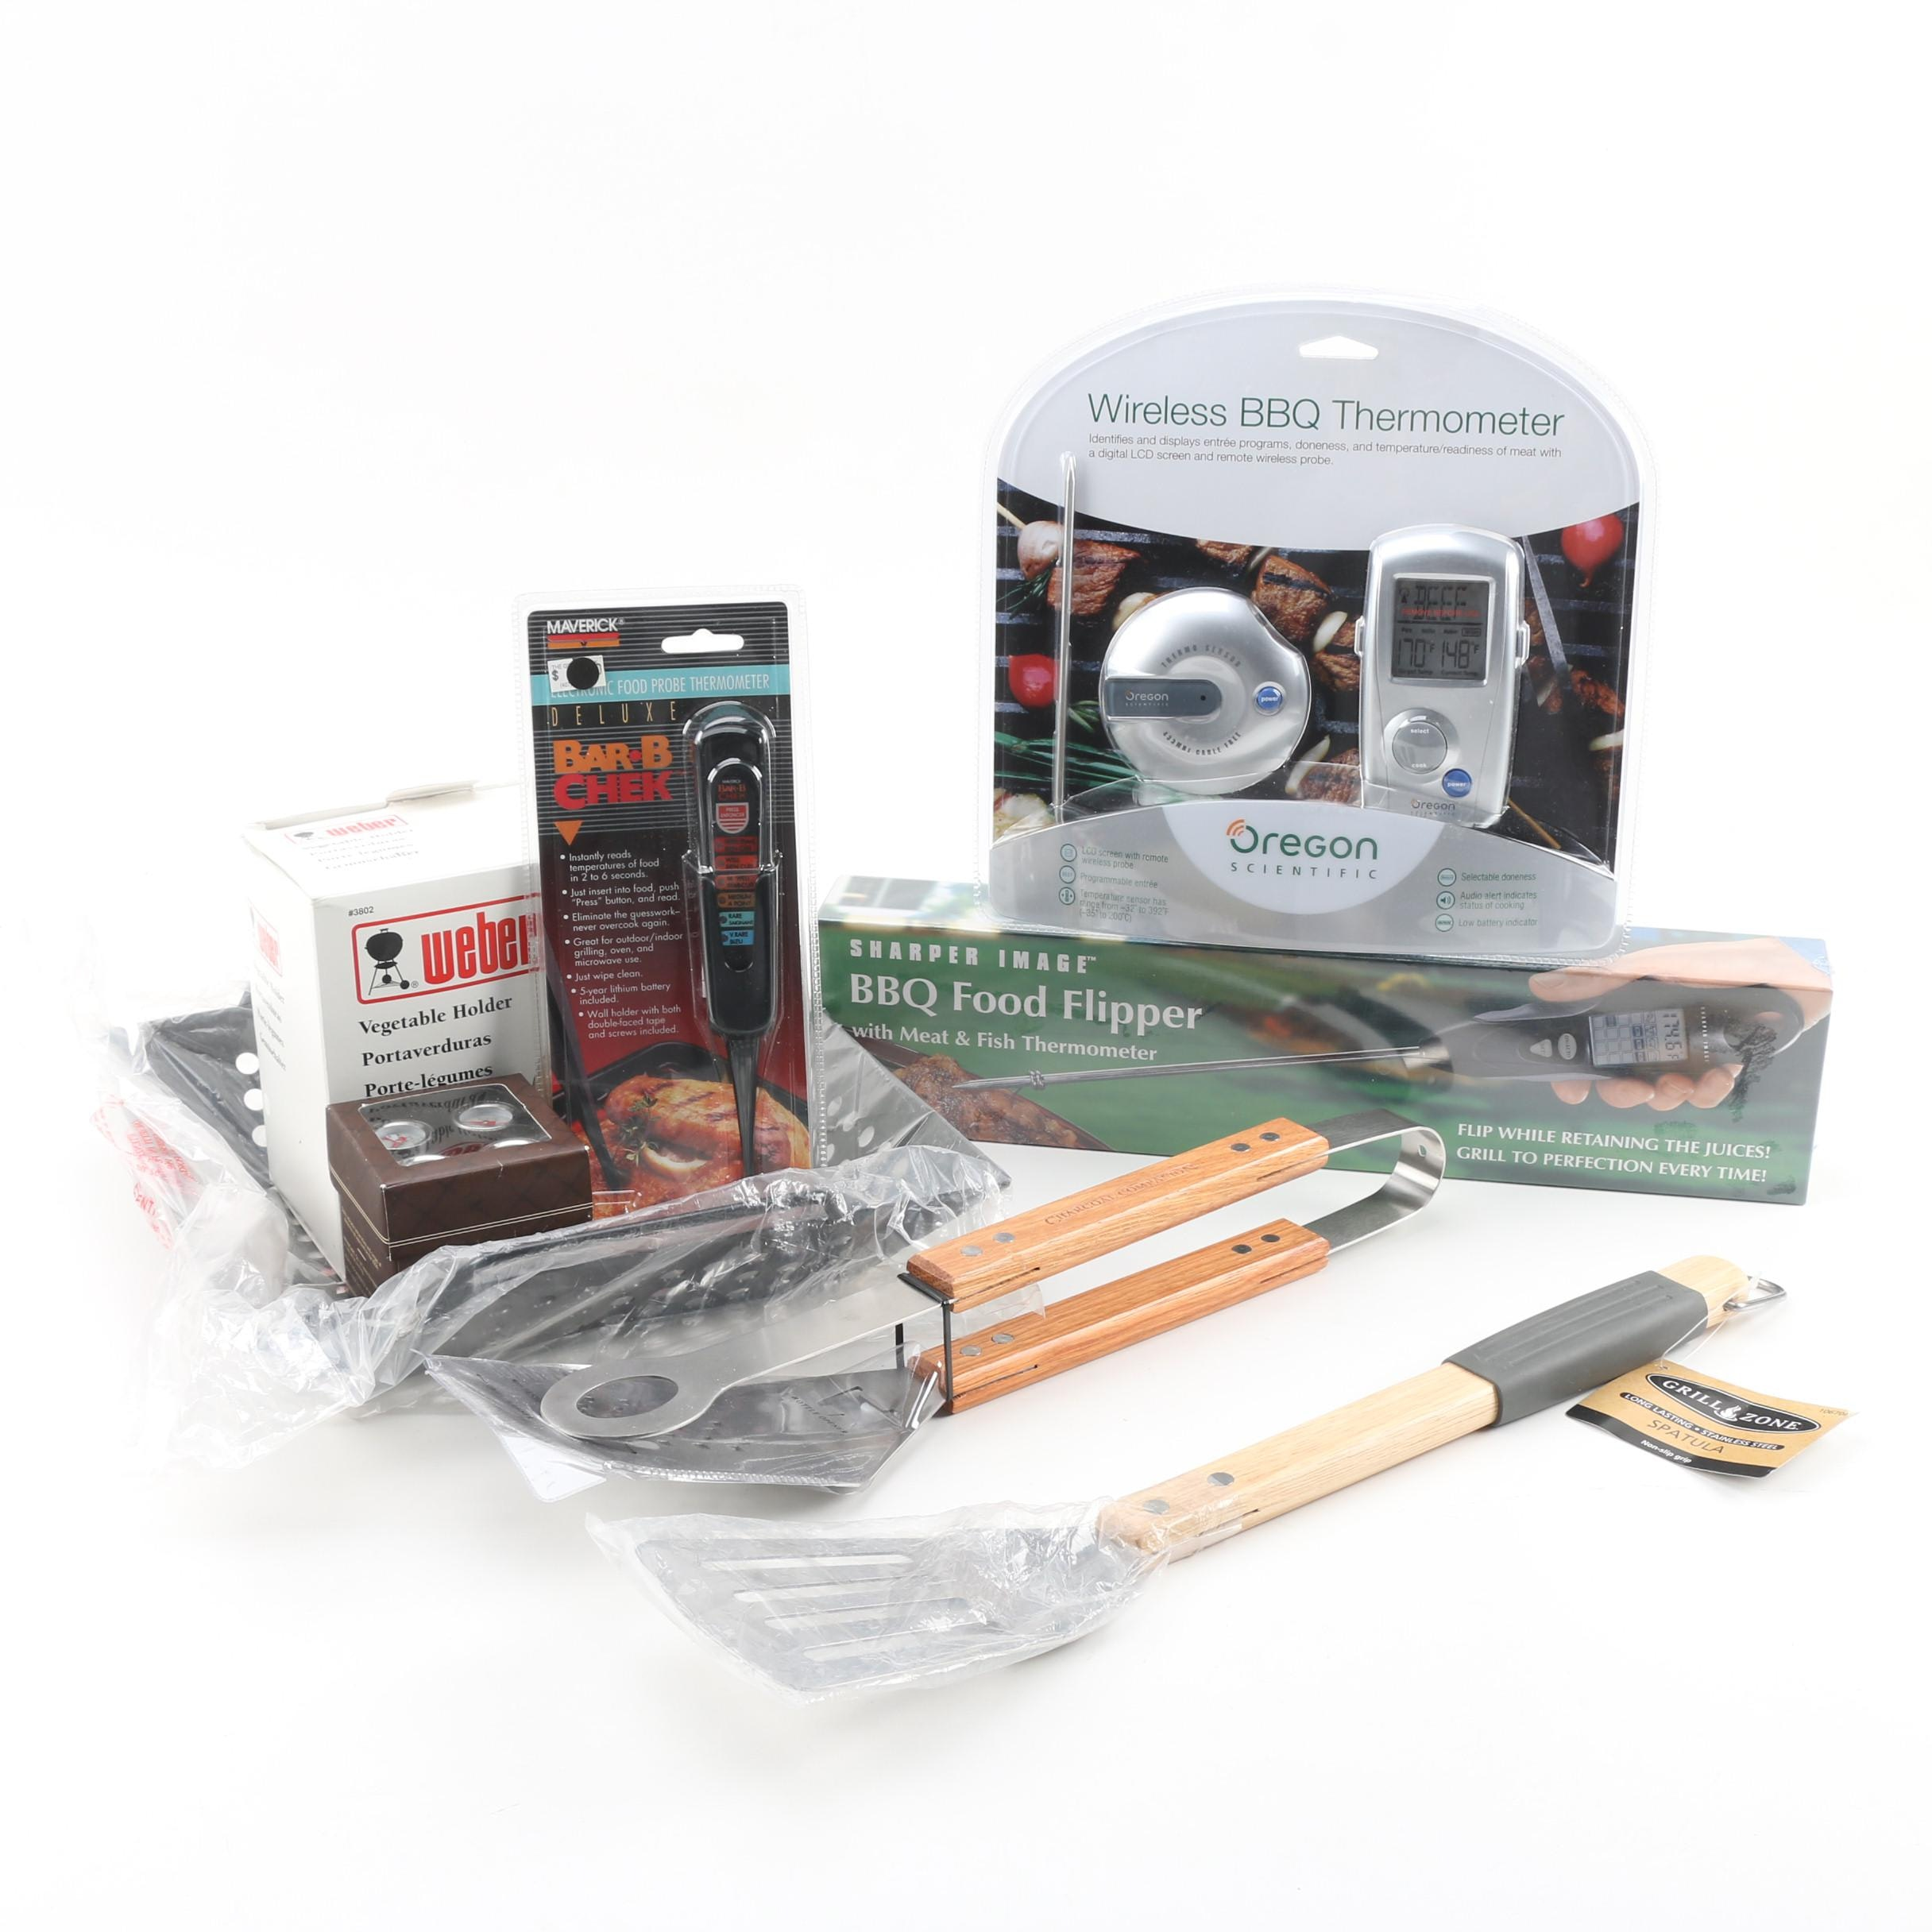 Grilling Accessories featuring Weber and Sharper Image